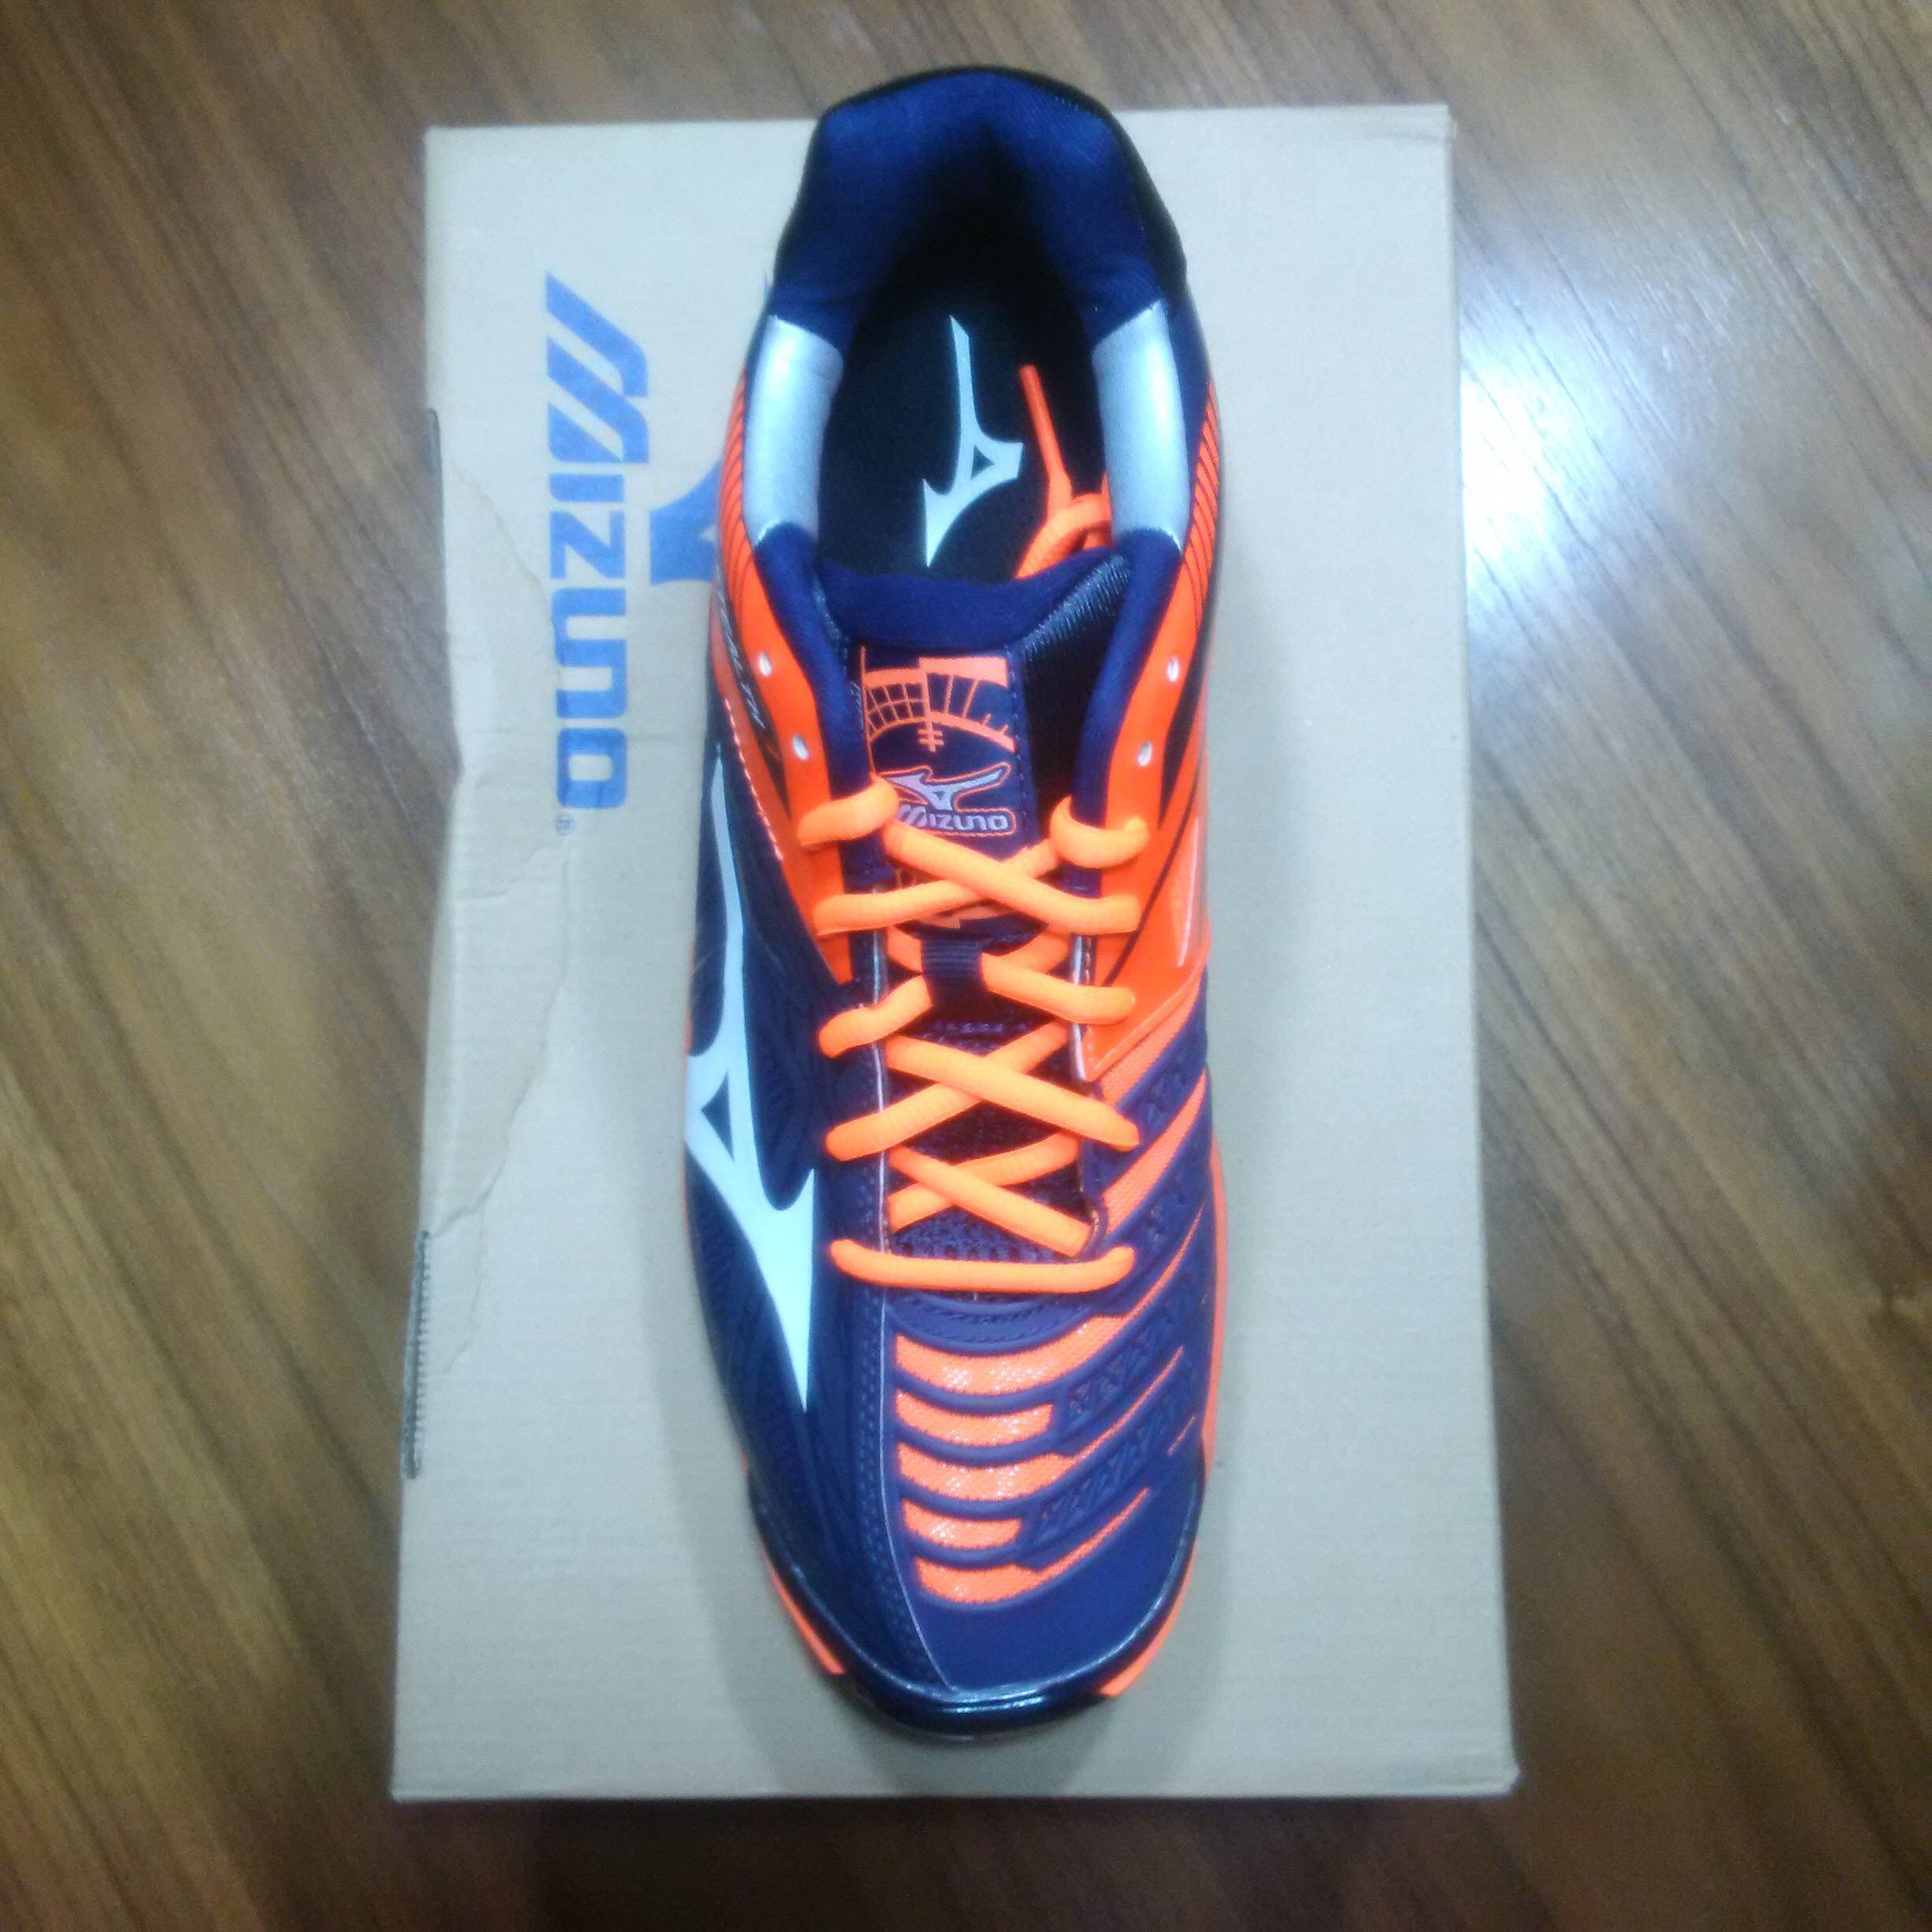 fred-mizuno-wave-stealth-1